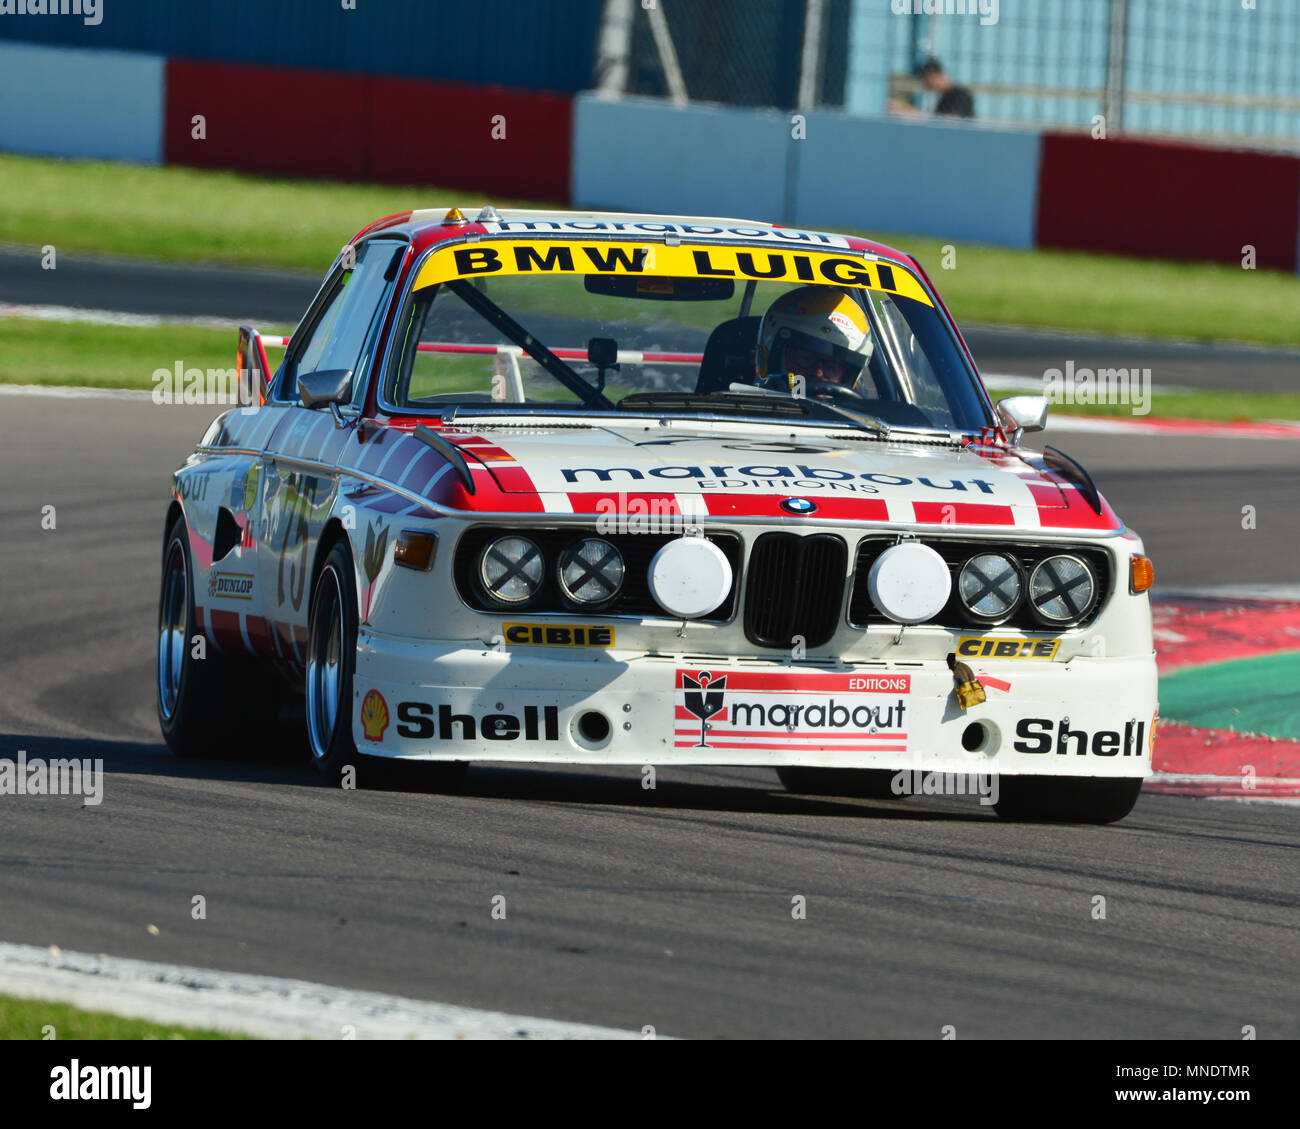 Bmw Csl Stock Photos Amp Bmw Csl Stock Images Alamy